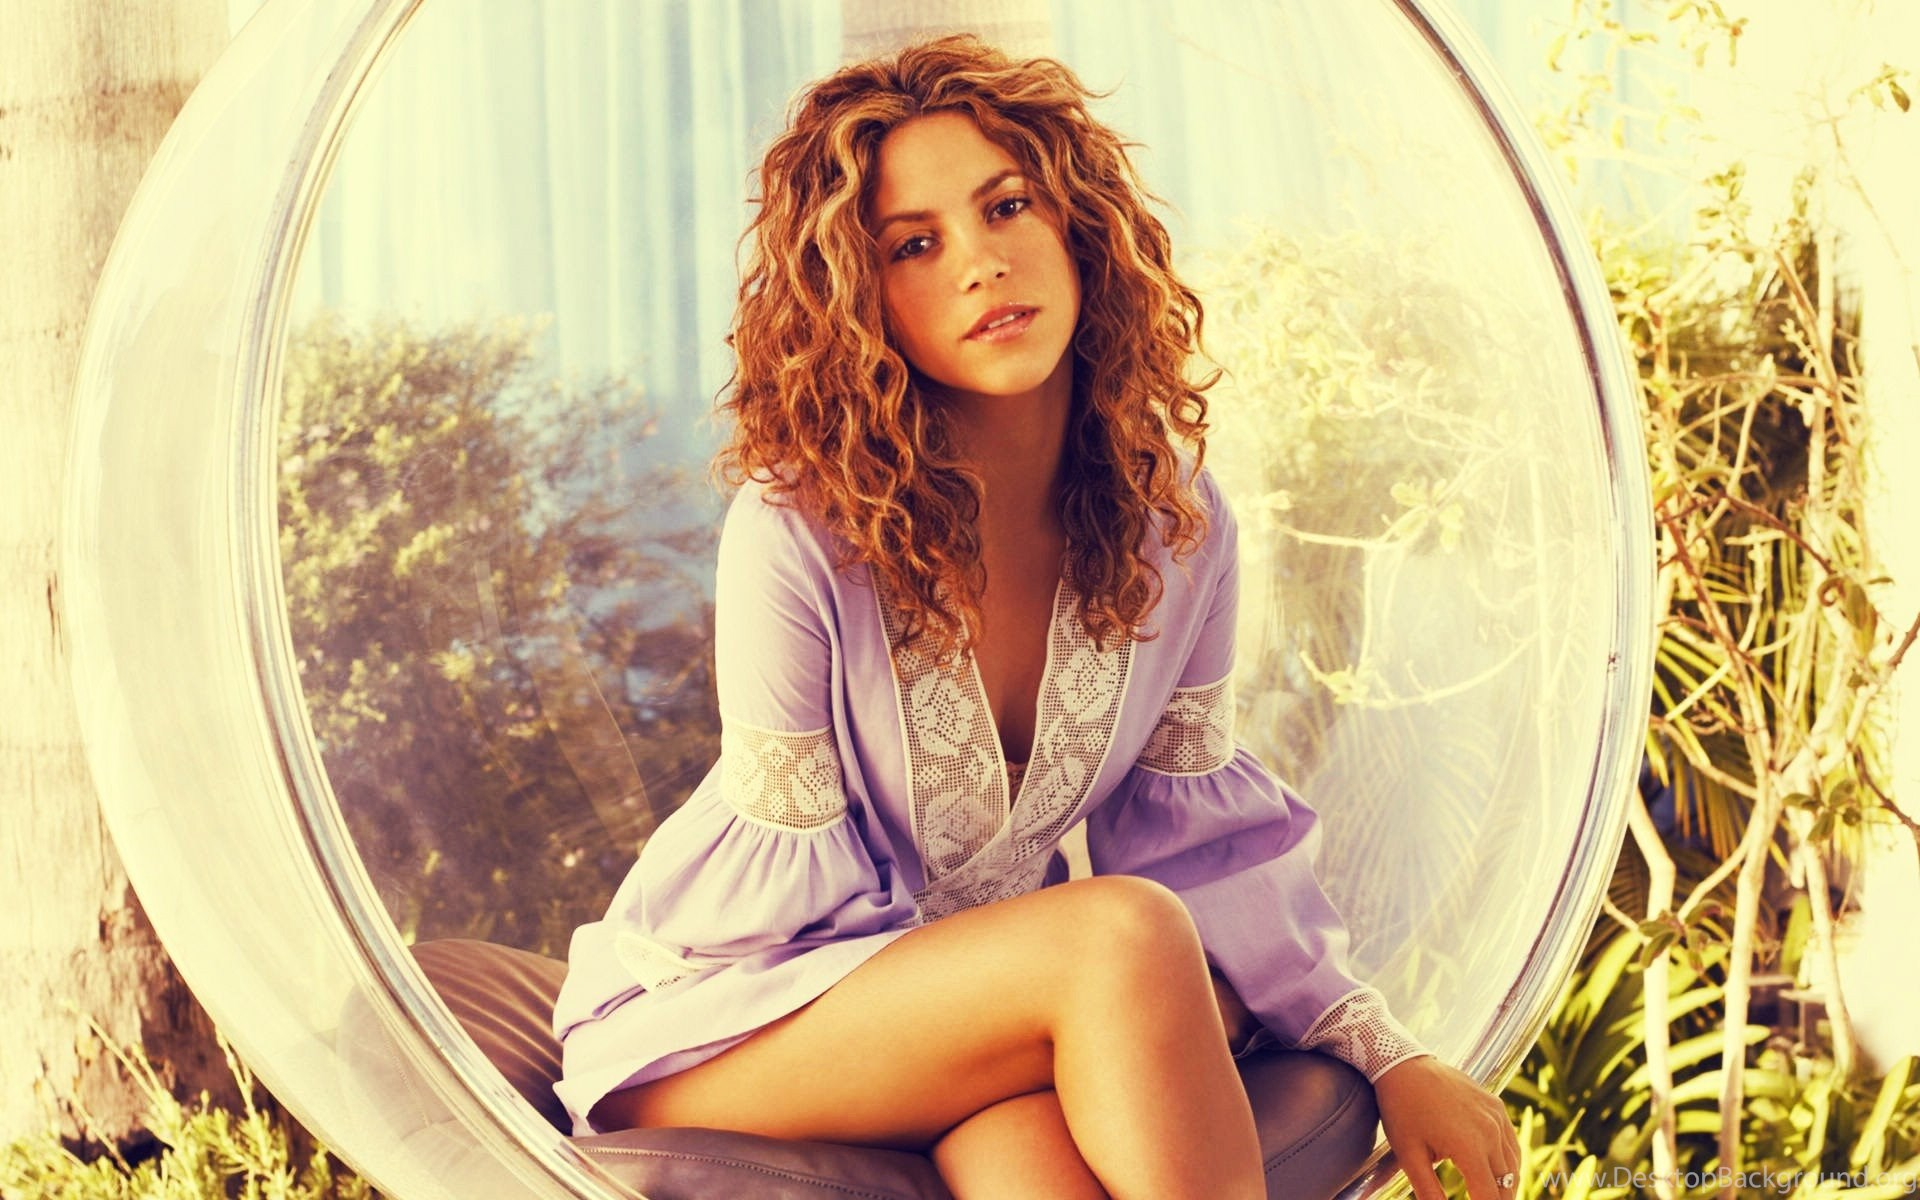 shakira isabel mebarak ripoll hot wallpapers desktop background